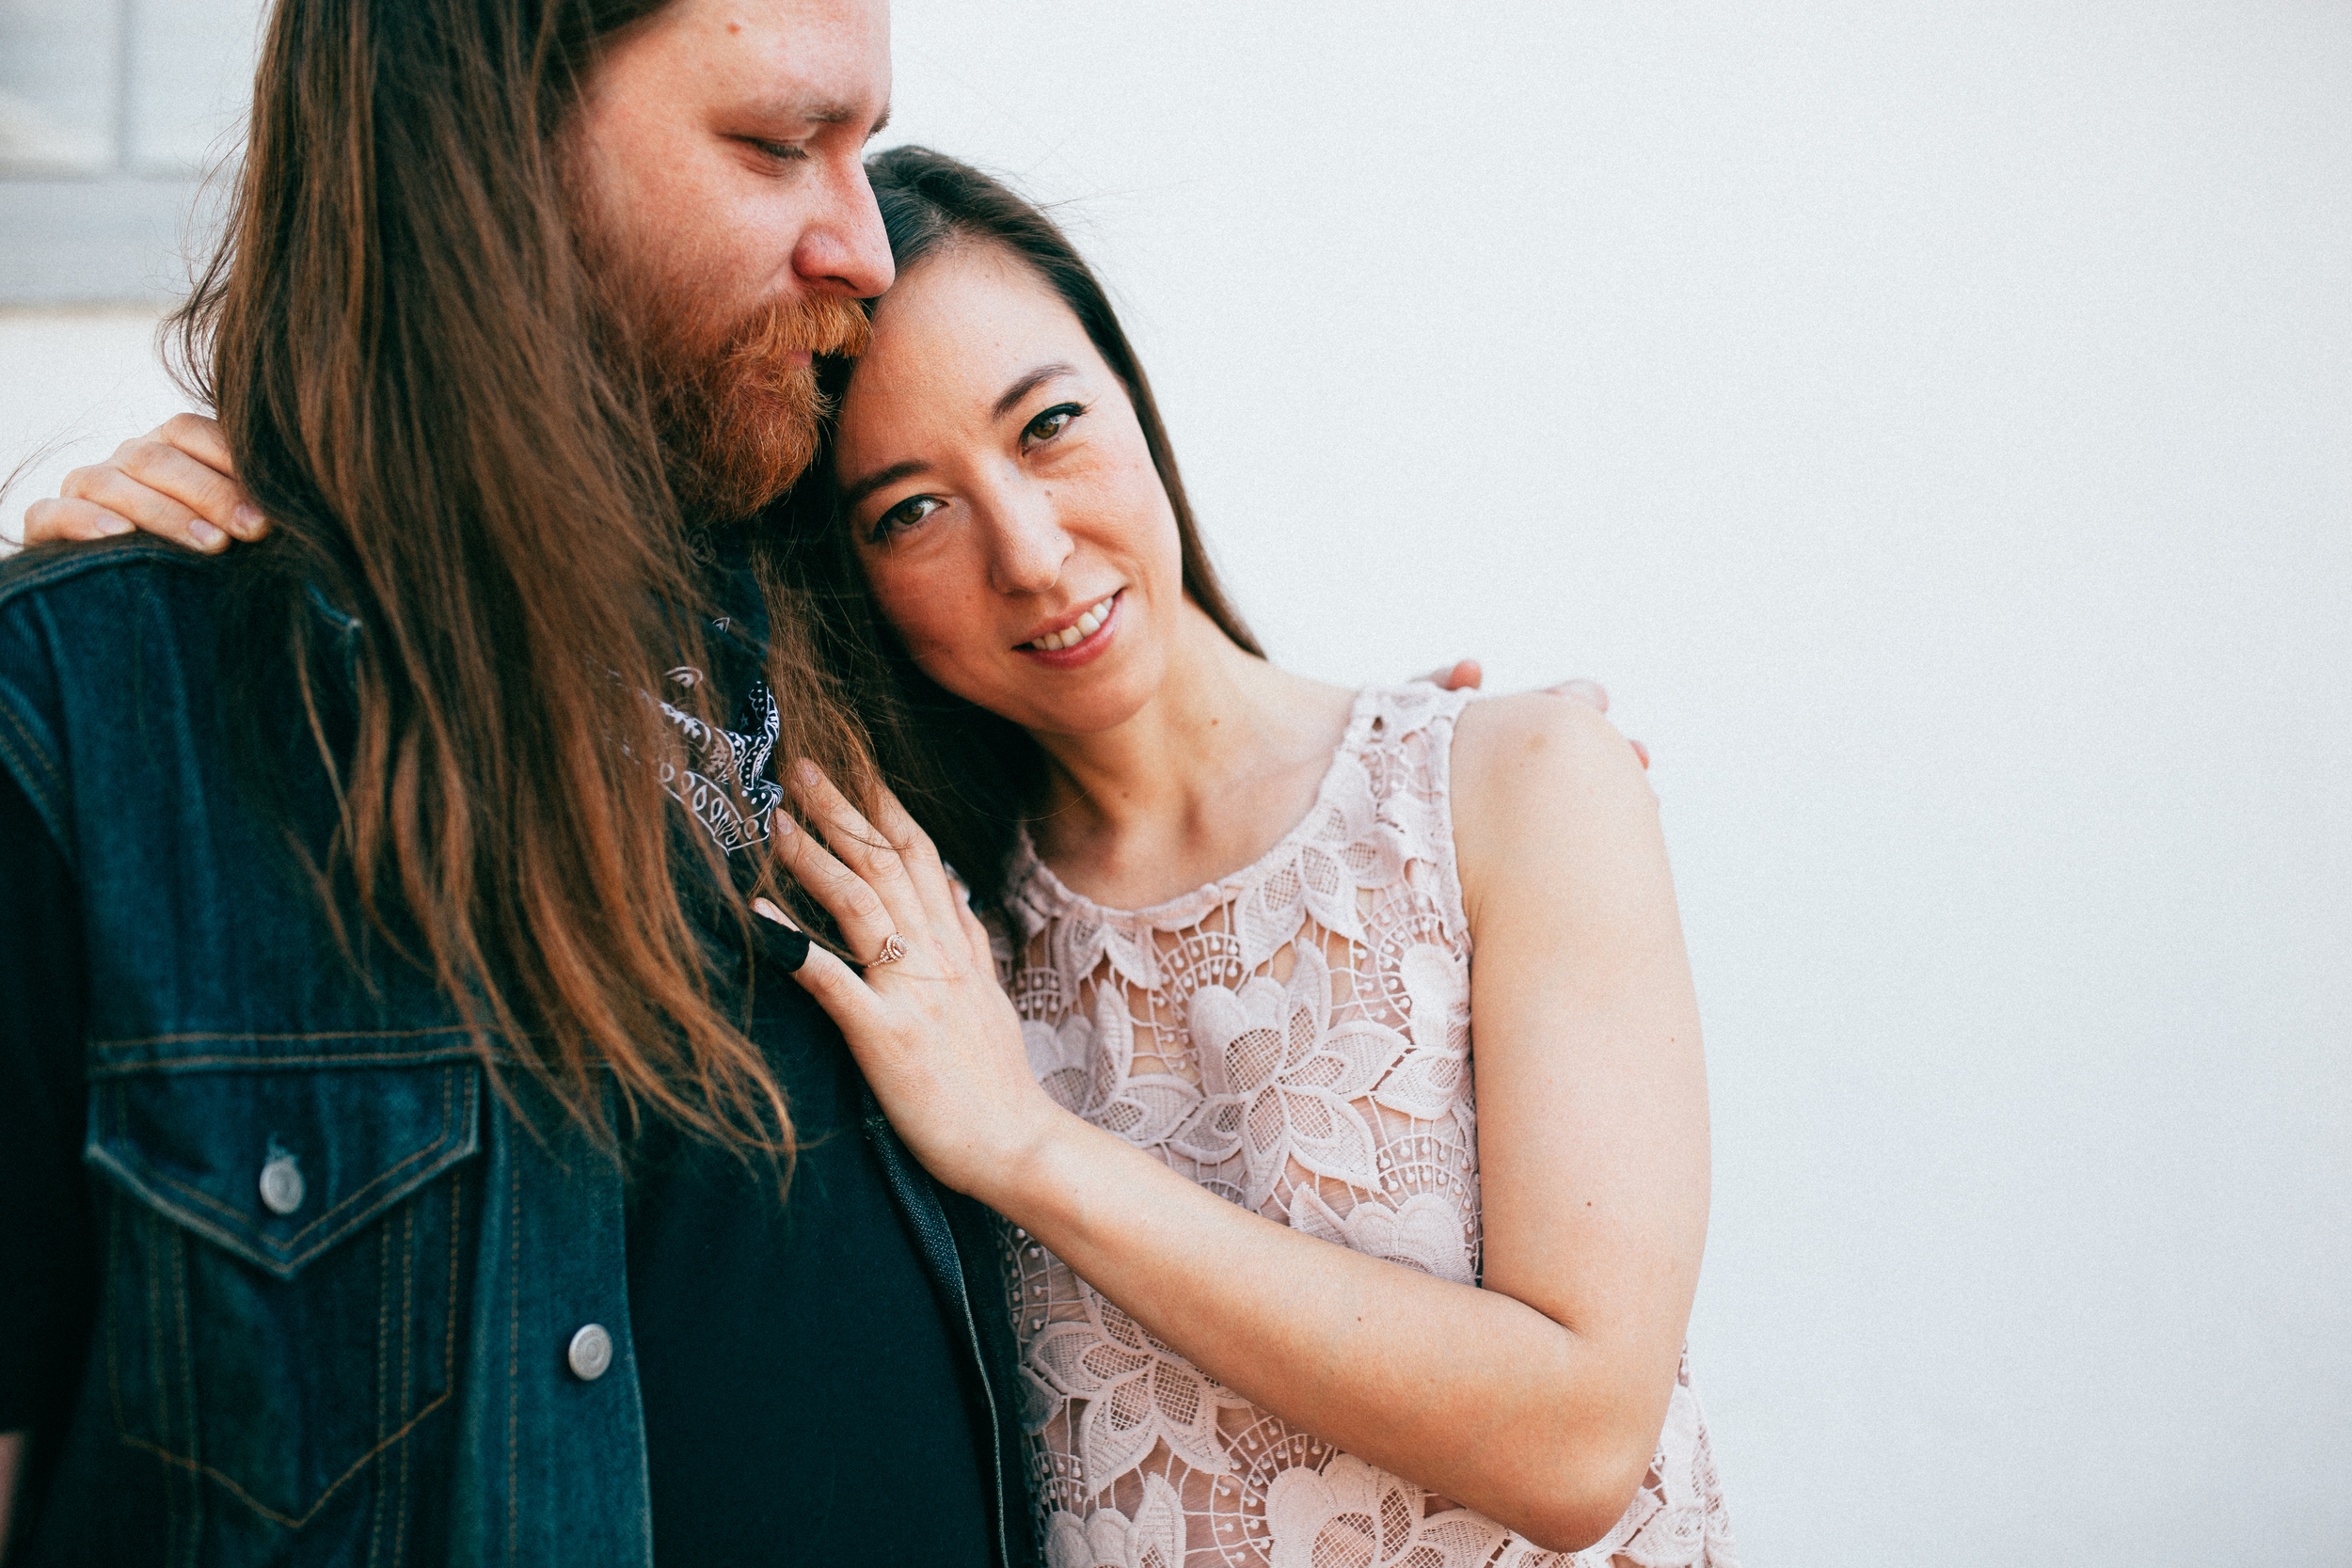 tommy-and-marcella-engagement-3441.jpg